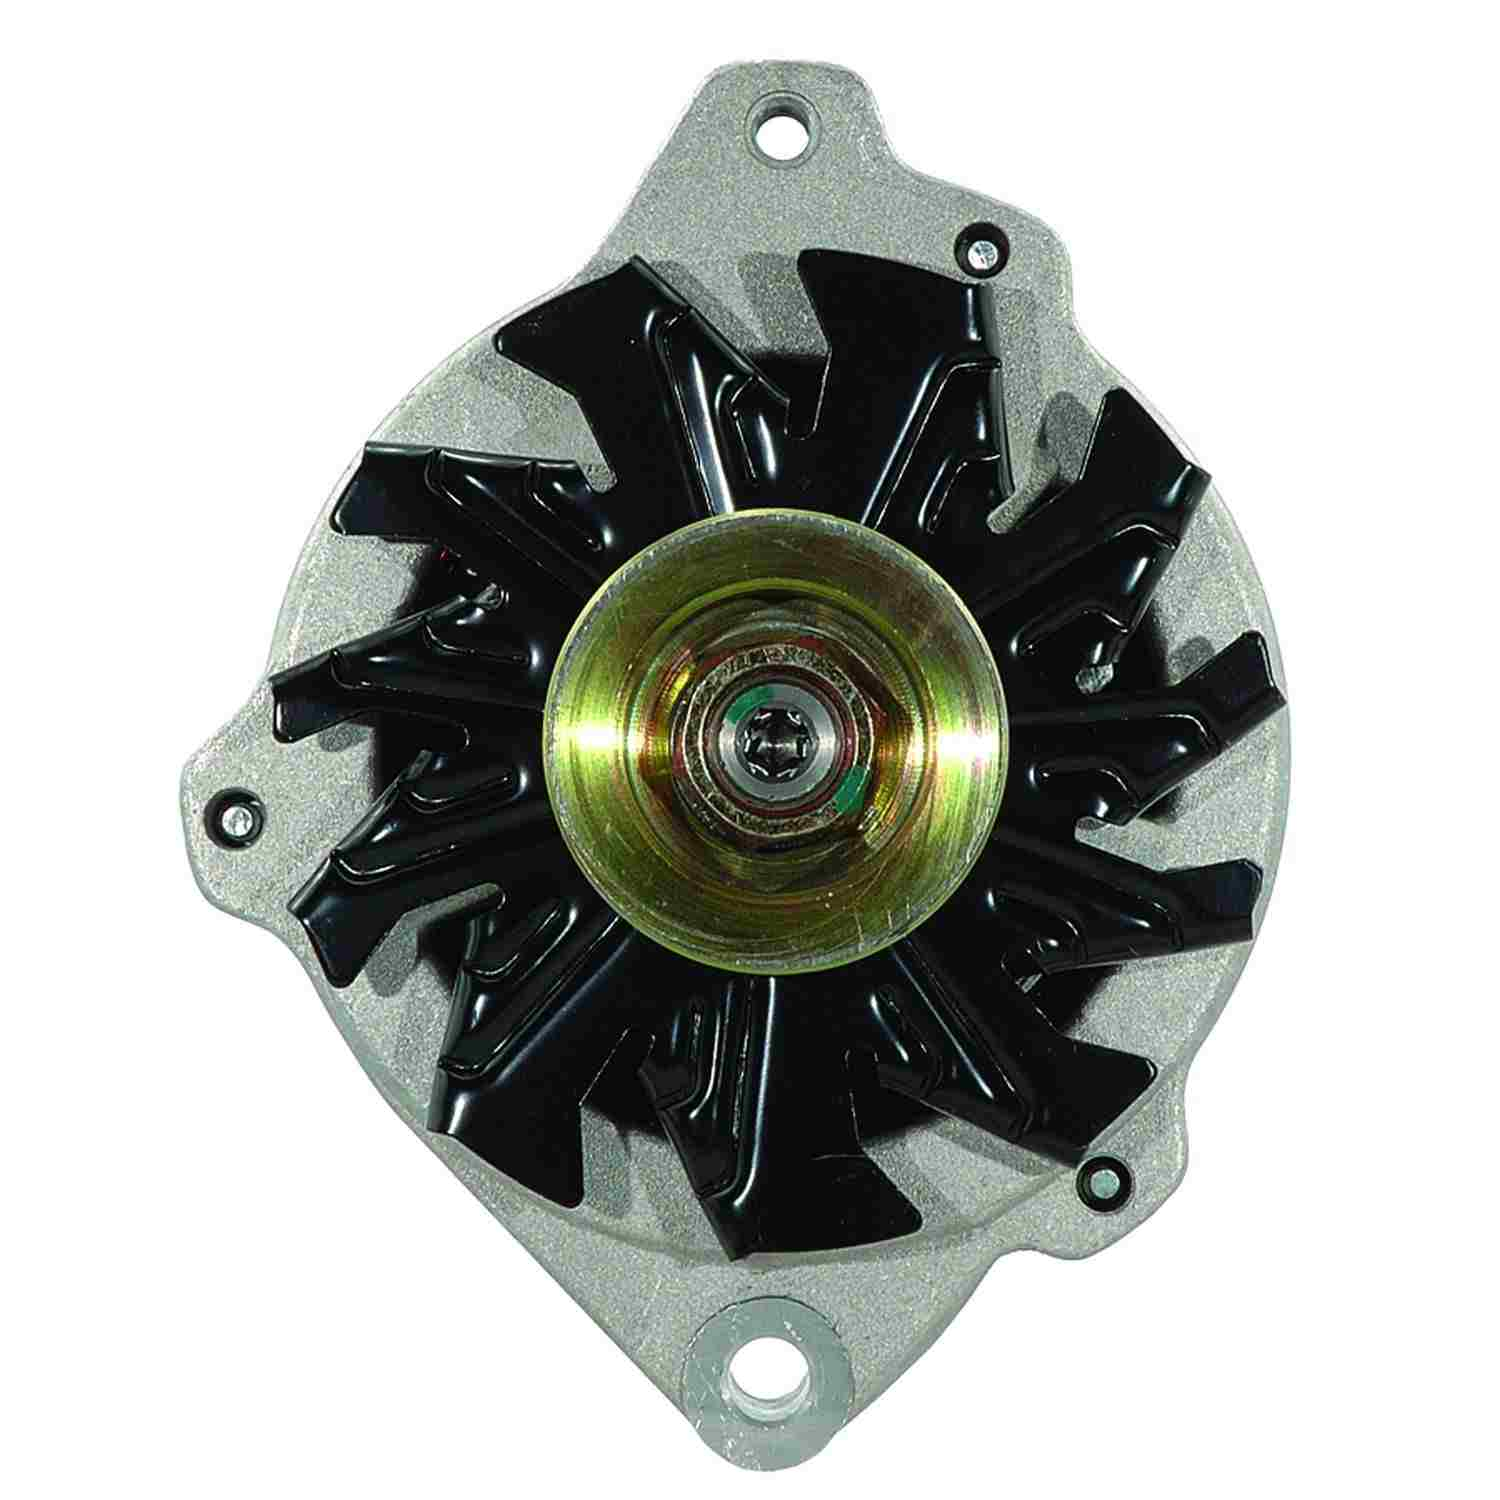 ACDELCO GOLD/PROFESSIONAL - Alternator - DCC 335-1003